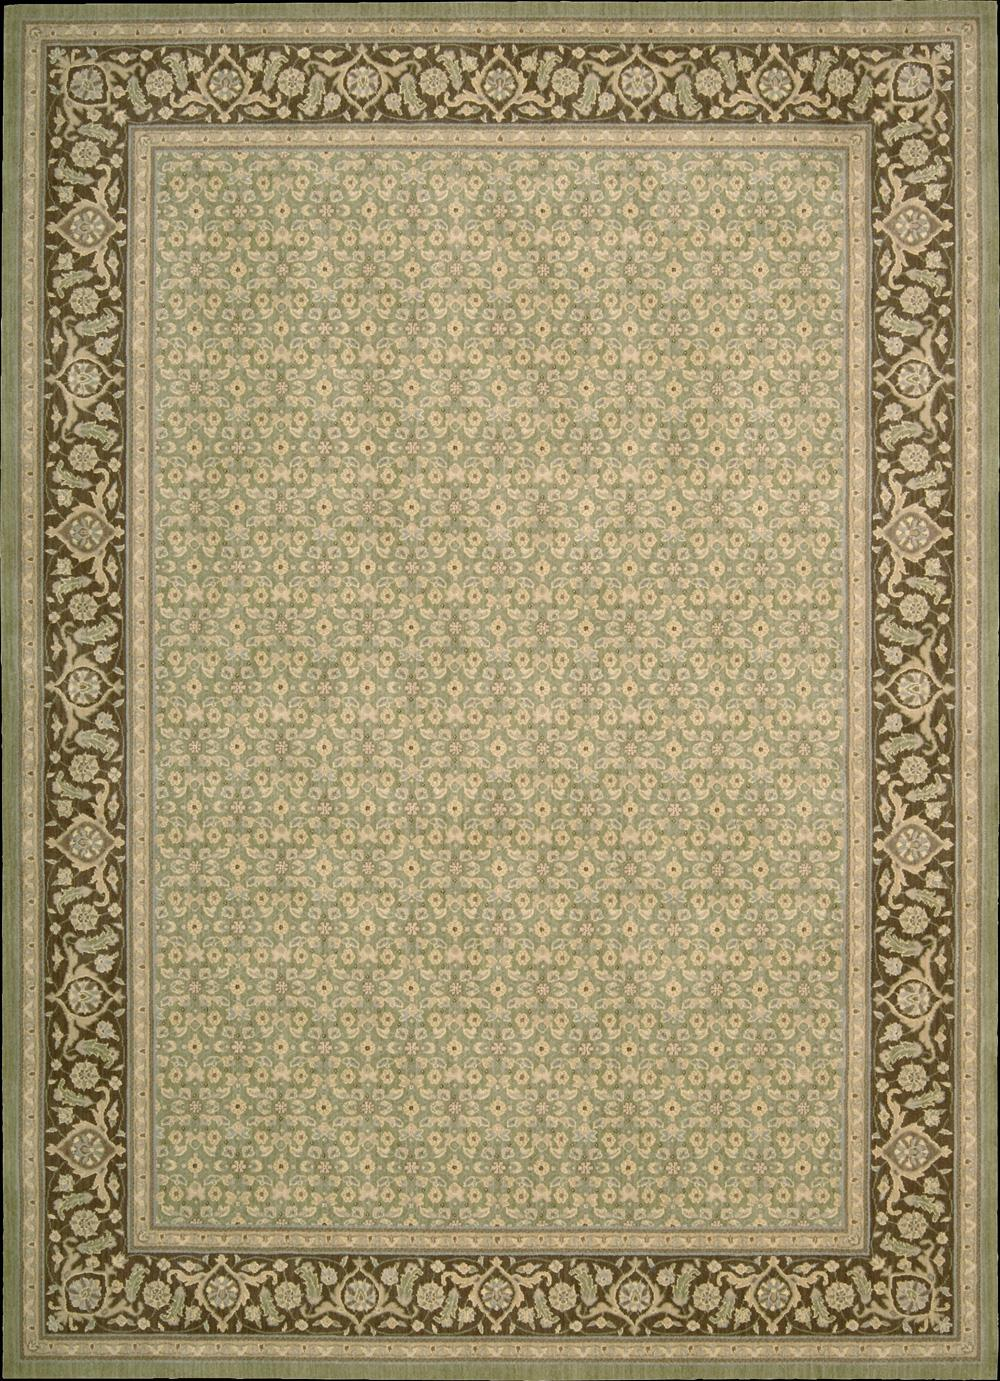 Nourison Persian Empire Area Rug 12' x 15' - Item Number: 44409